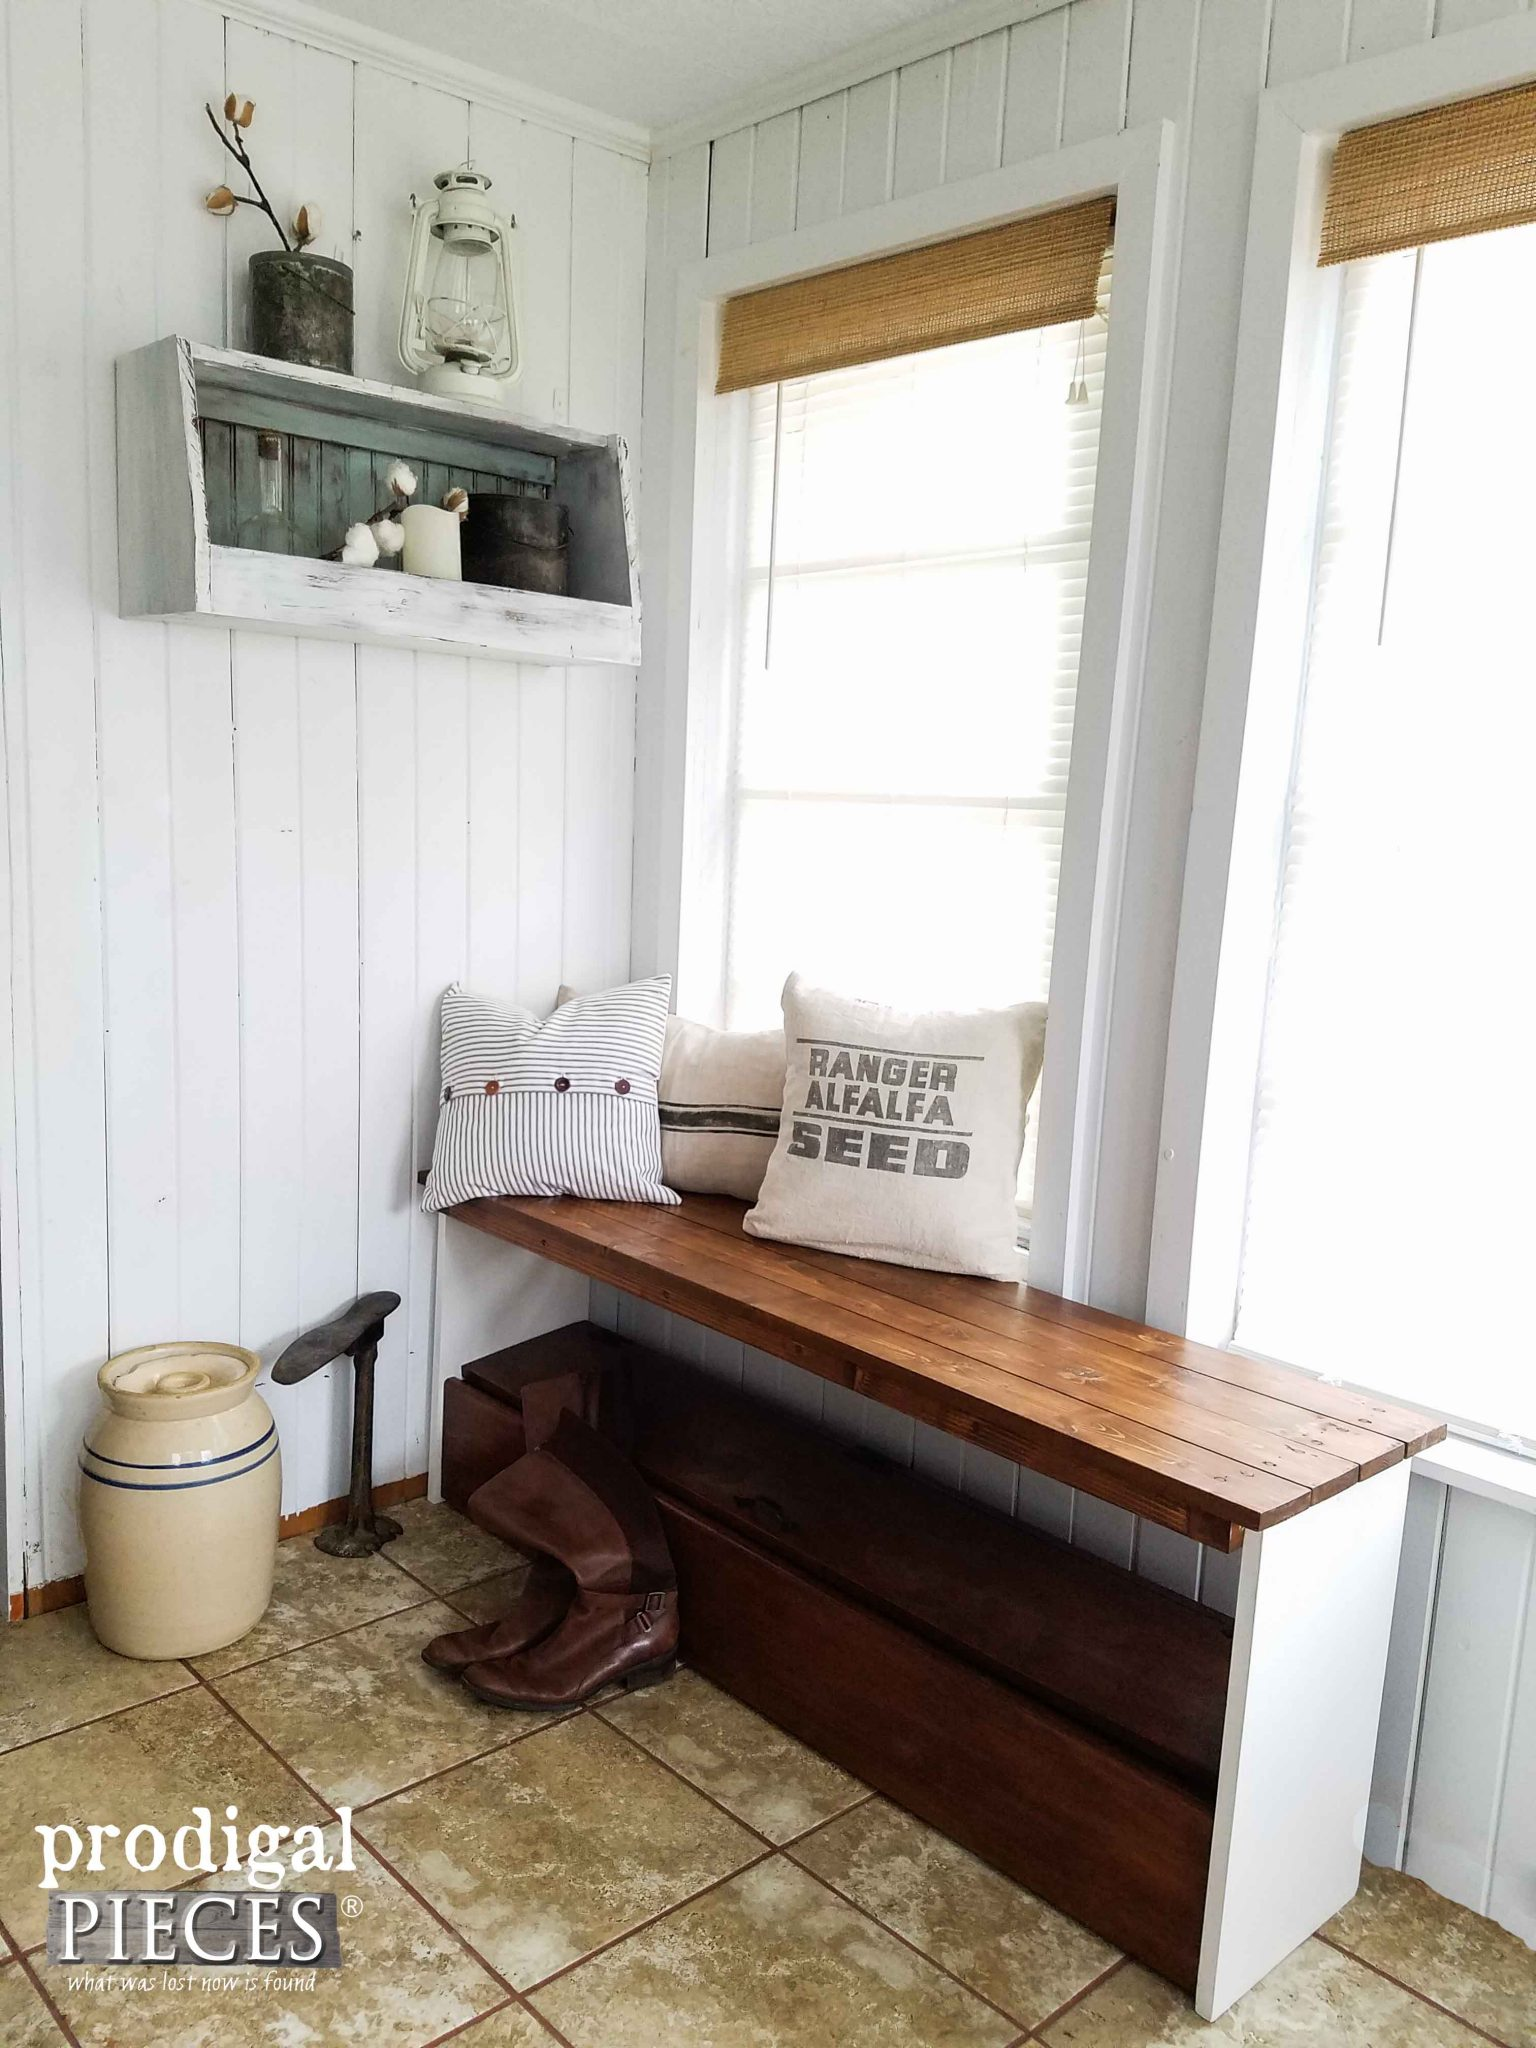 Rustic Repurposed Headboard Bench & Wall Shelf by Prodigal Pieces | prodigalpieces.com